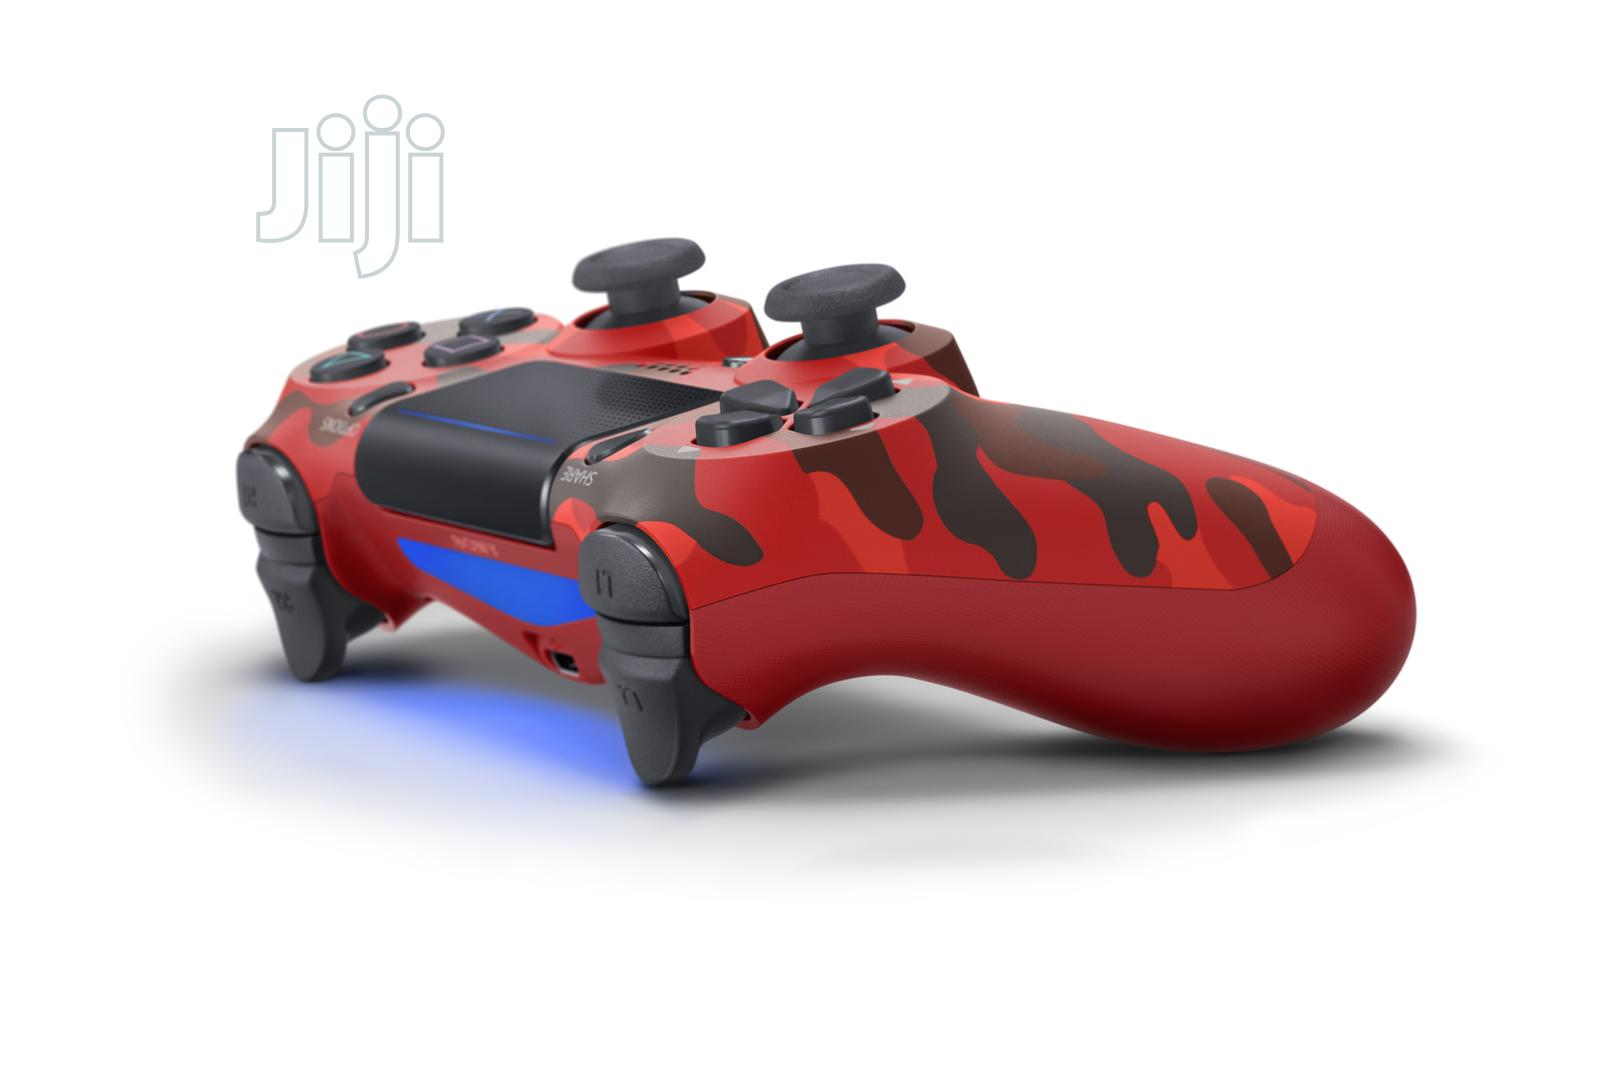 Sony Dualshock 4 Wireless Controller For Playstation 4 - Red Camo | Accessories & Supplies for Electronics for sale in Ikeja, Lagos State, Nigeria